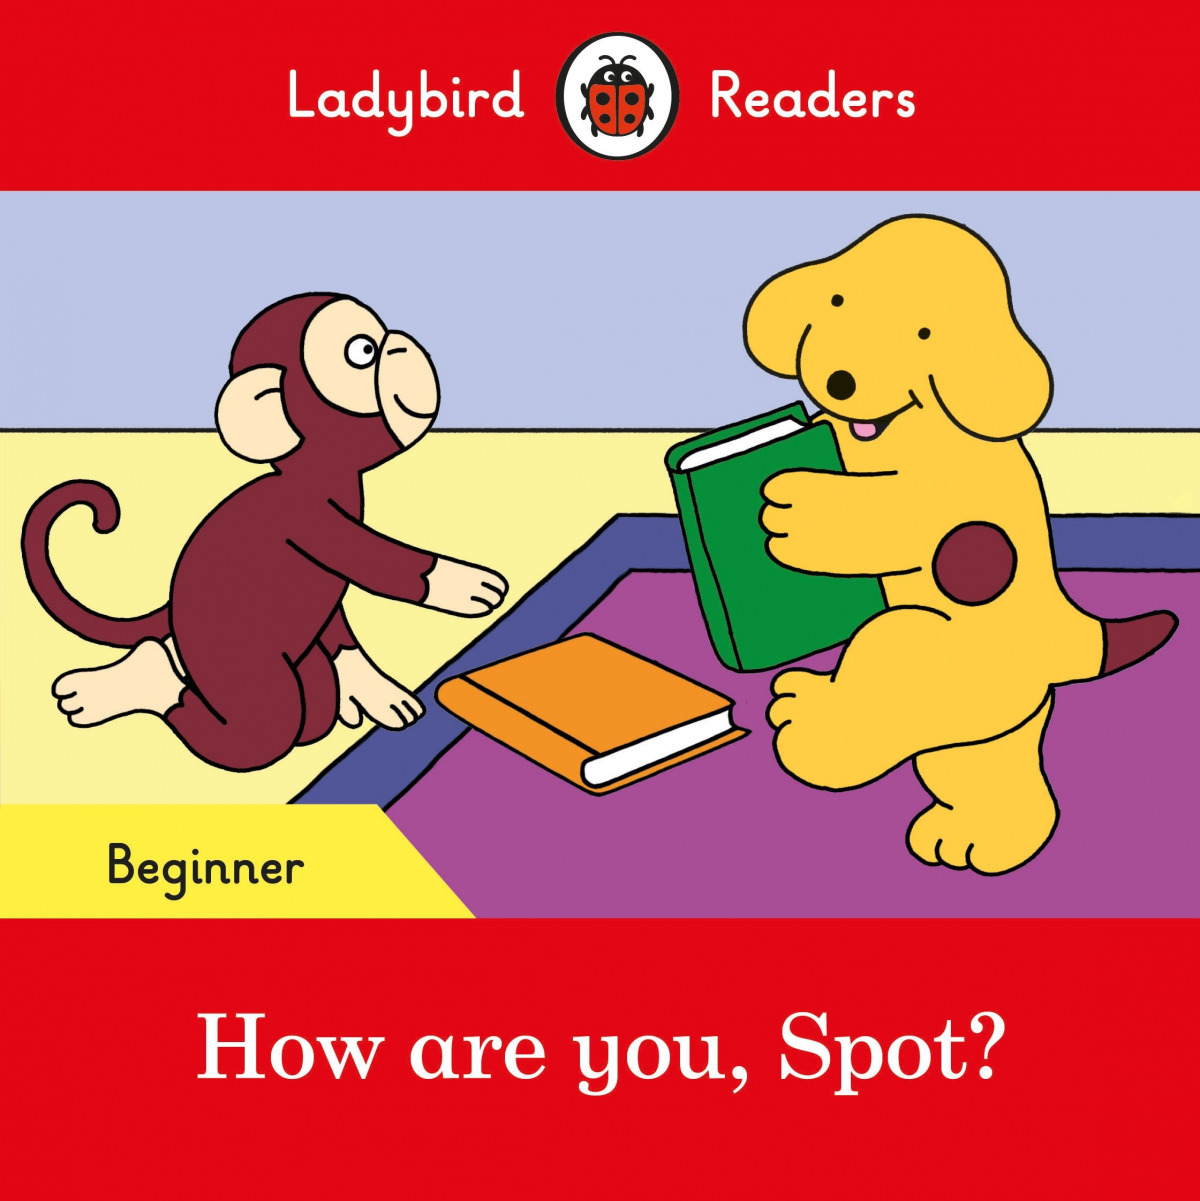 HOW ARE YOY, SPOT?